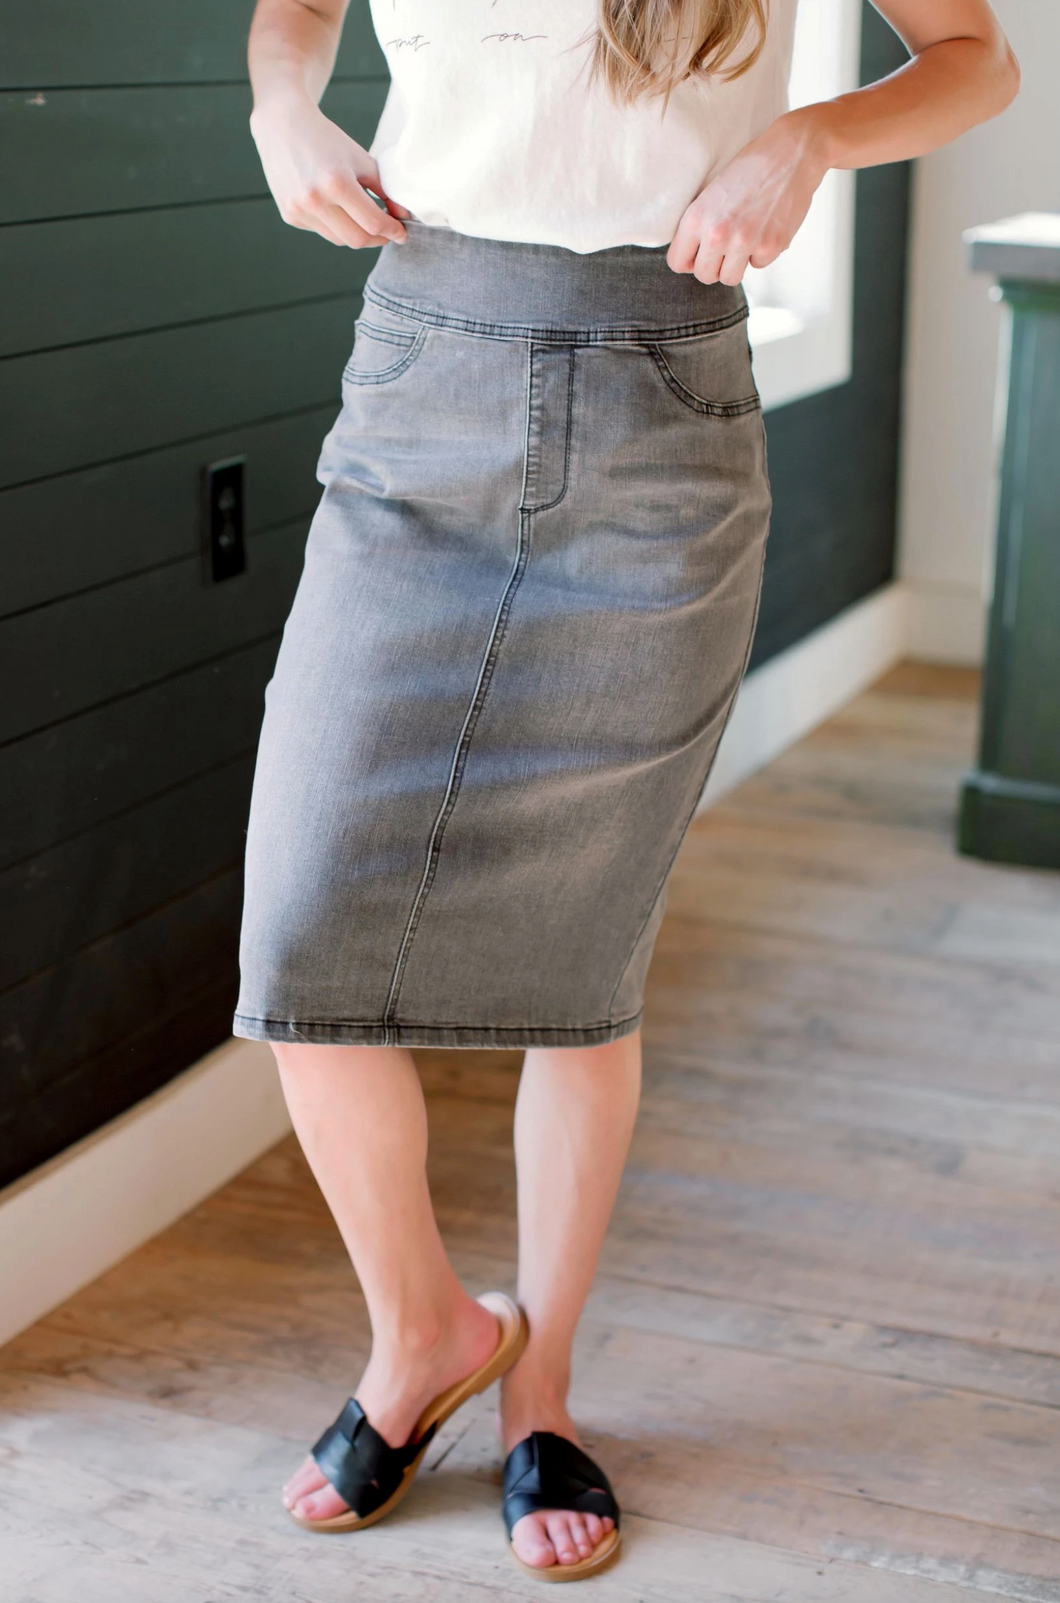 'SARA' CLASSIC KNEE LENGTH DENIM SKIRT IN CHARCOAL